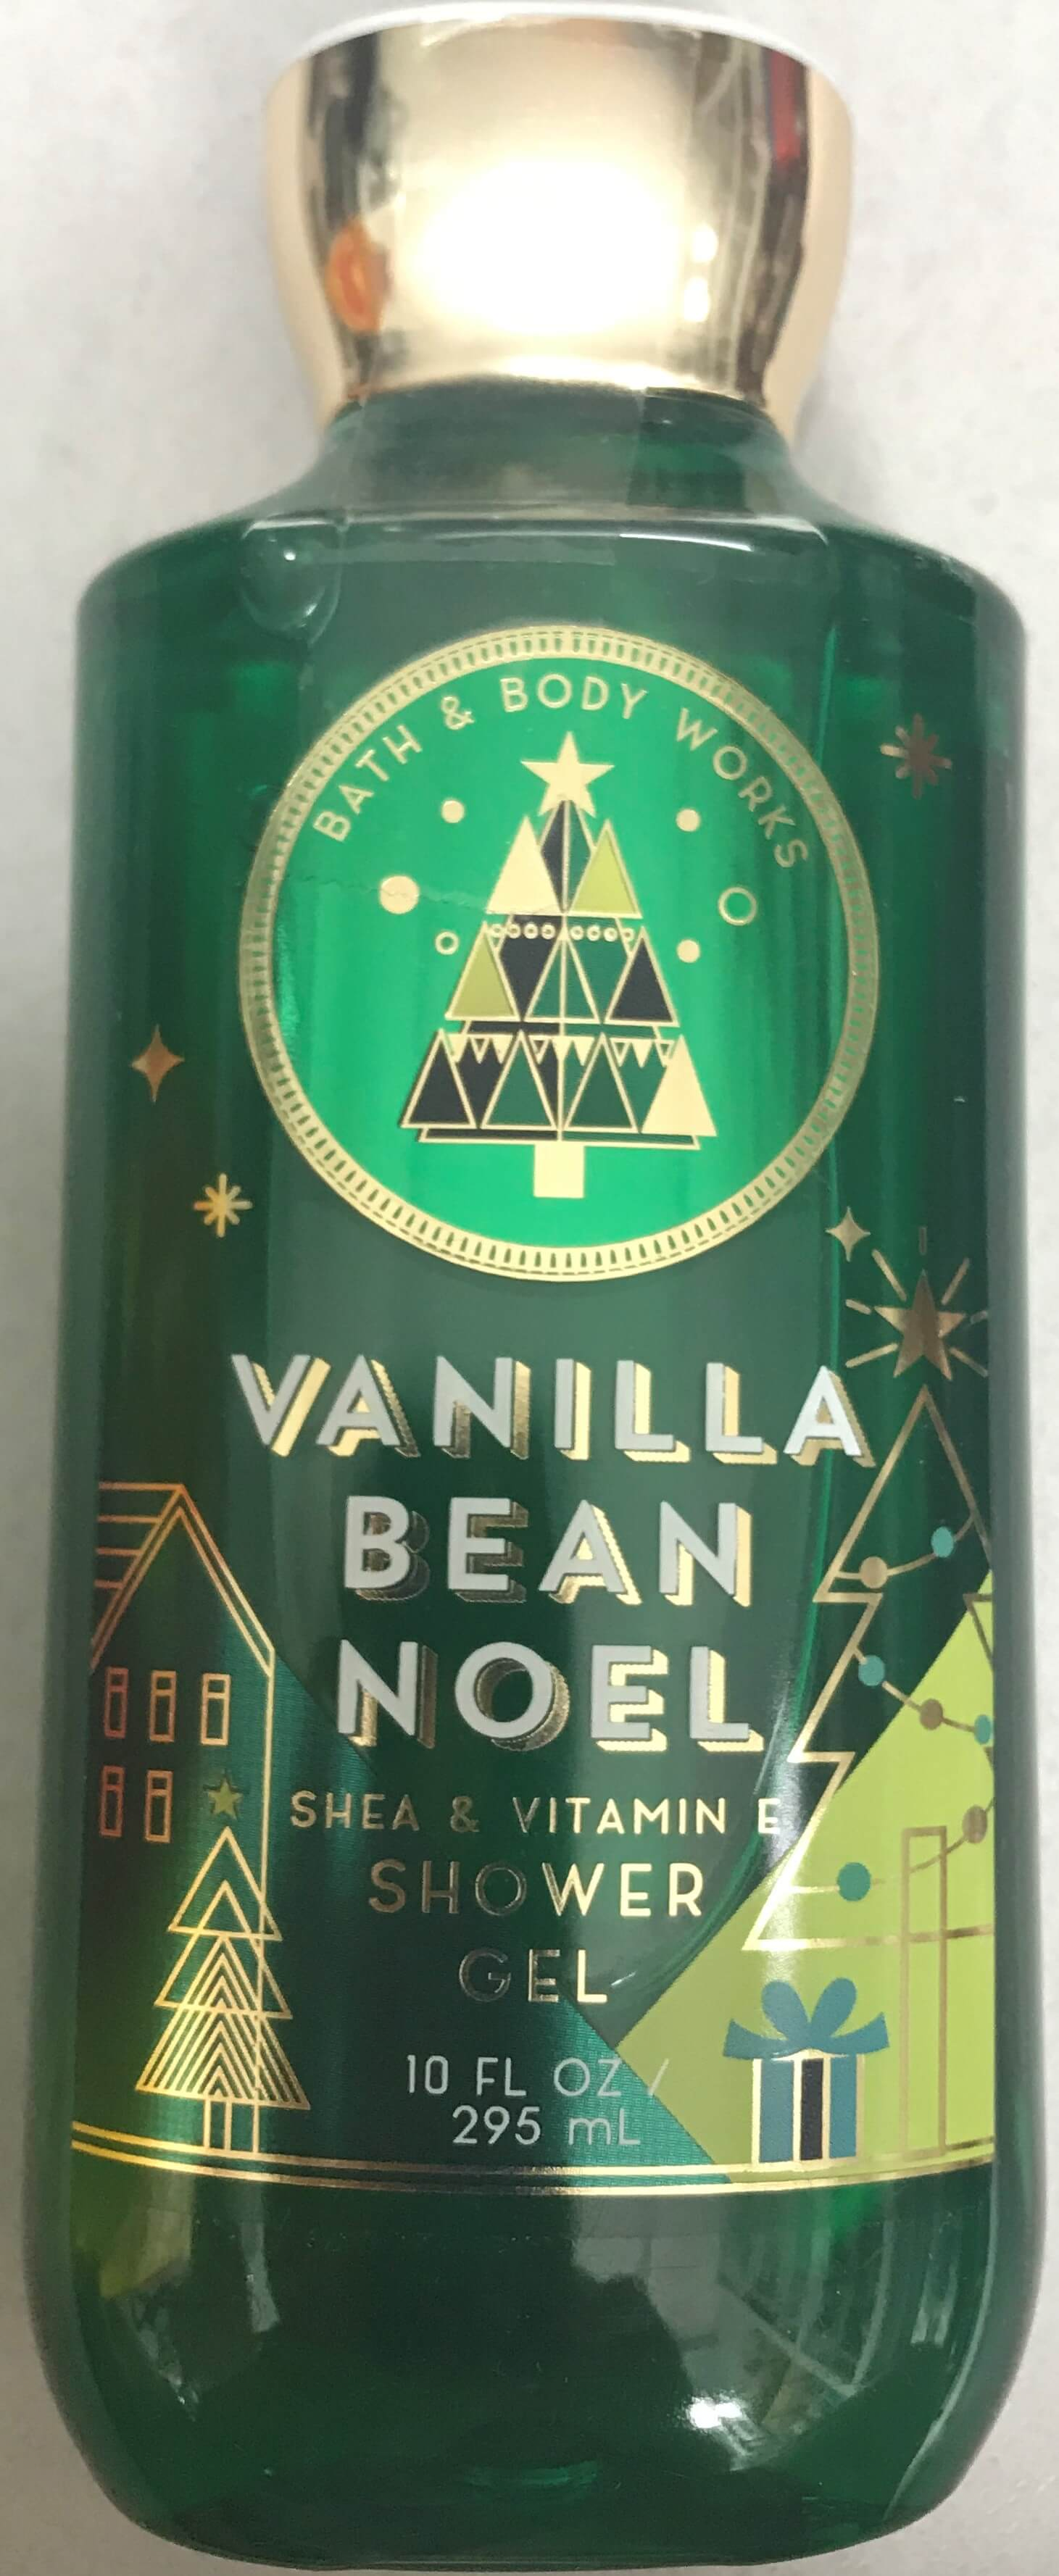 GEL Tắm VANILLA BEAN NOEL 295ML